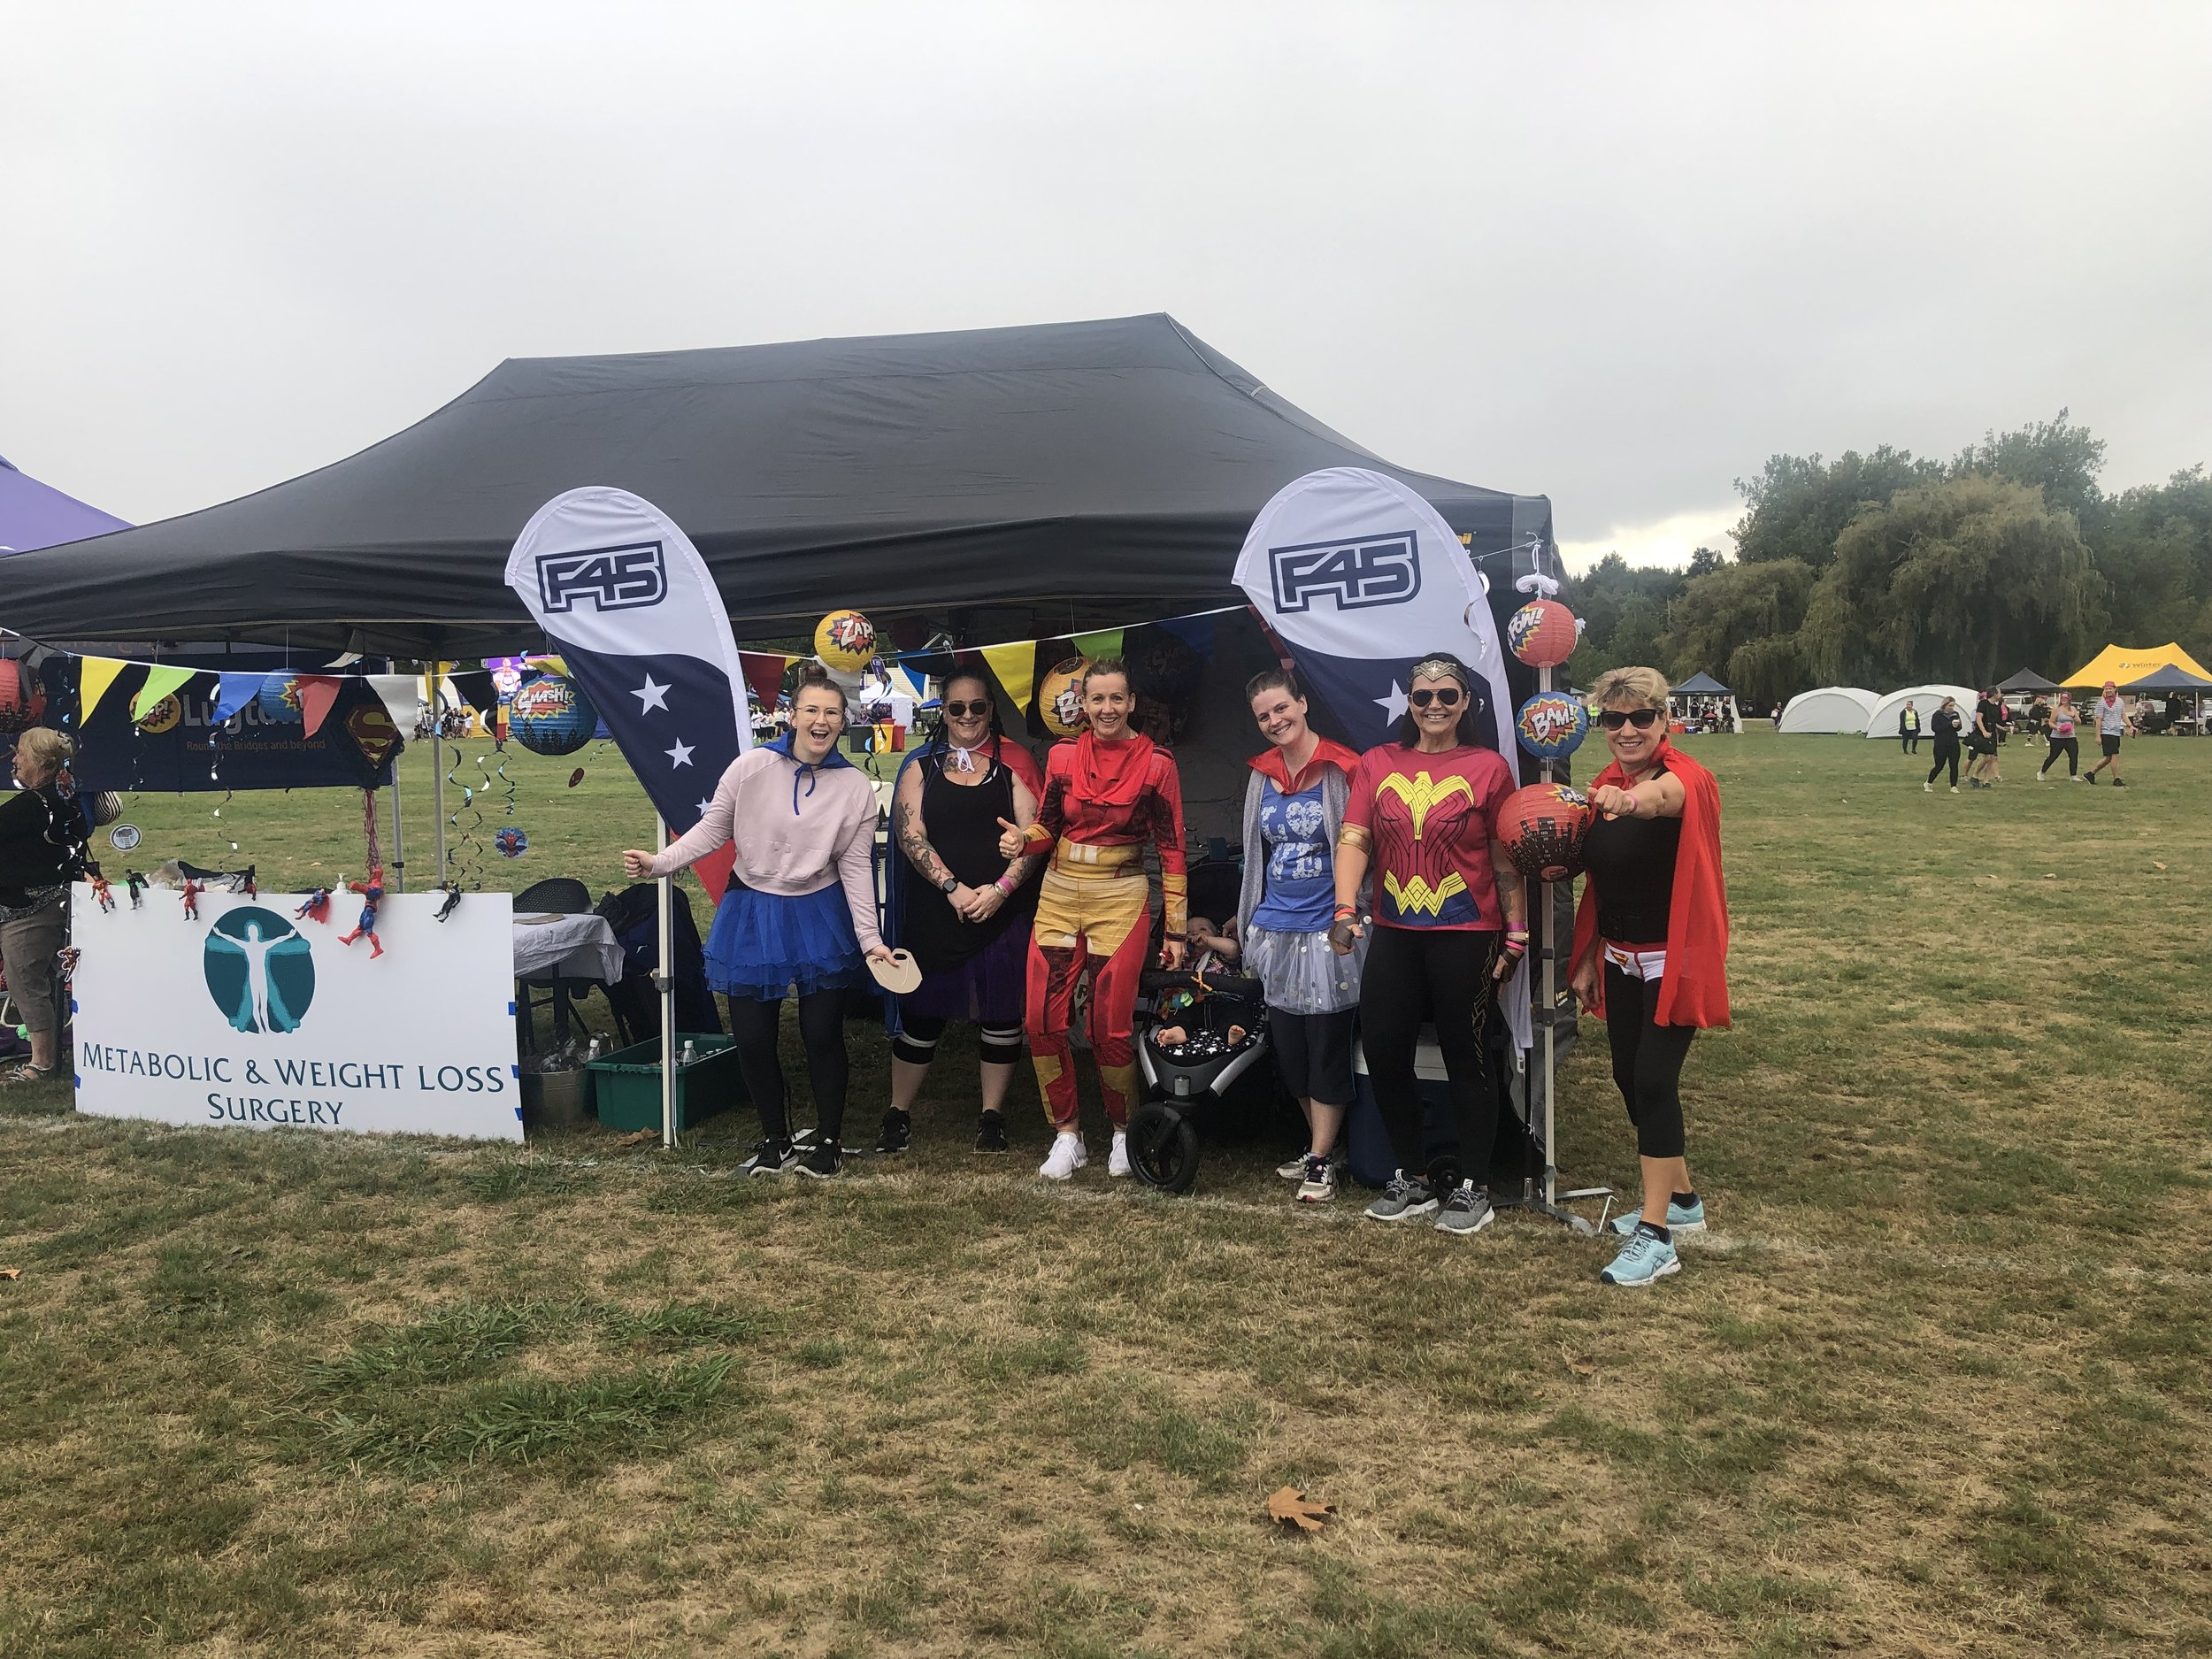 The WLS and F45 team at Relay For Life 2019